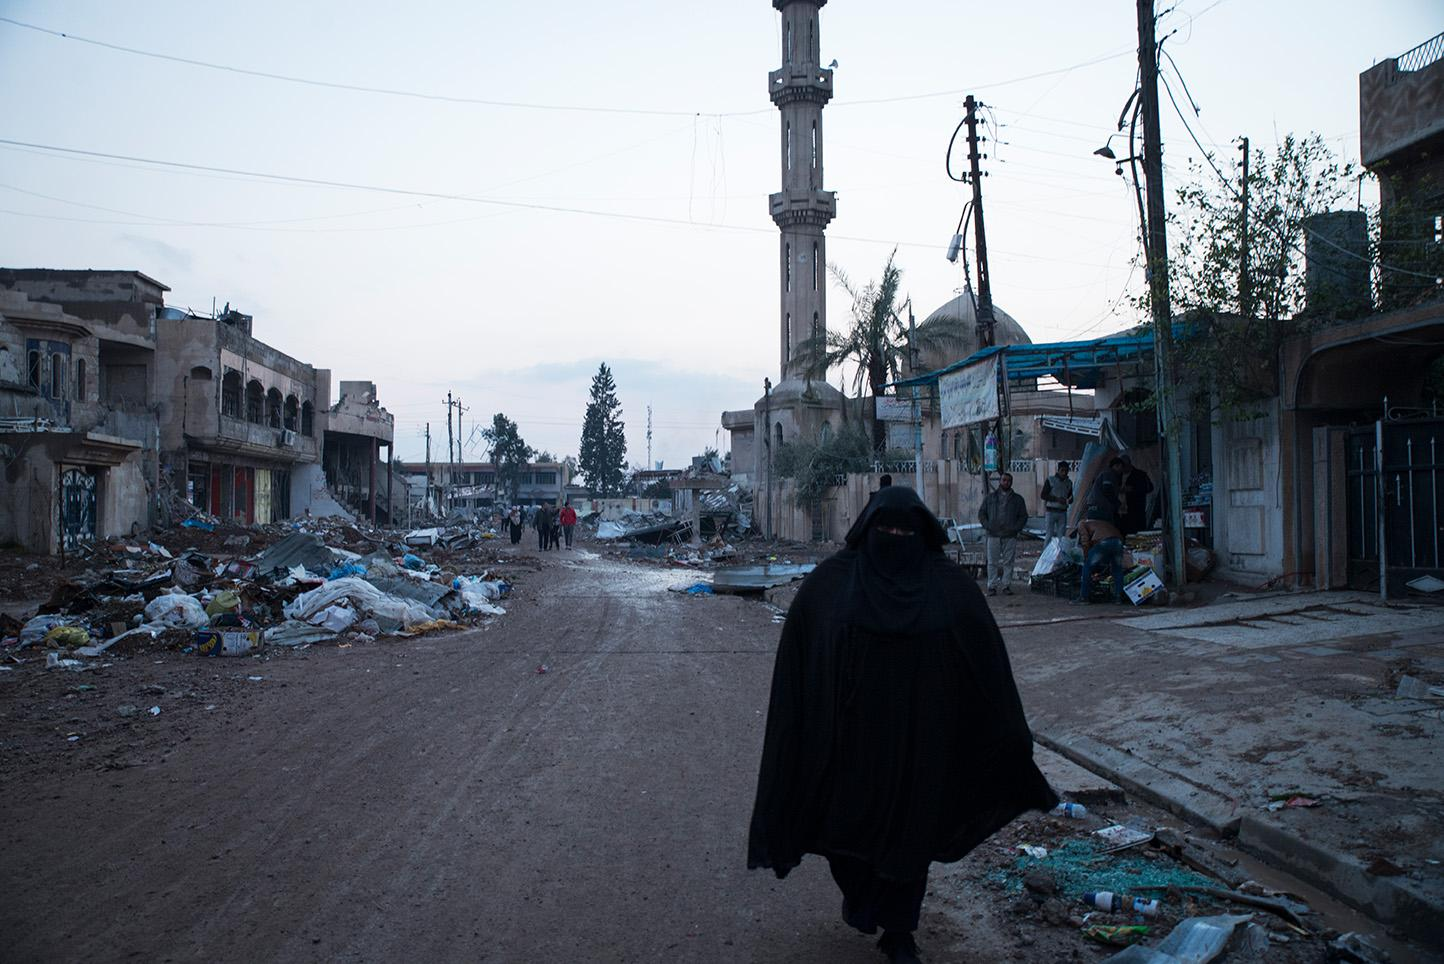 Mosul, Iraq. A woman walks past a mosque destroyed by ISIS in the Al Sukar neighborhood of eastern Mosul. For more than two and half years Mosul, Iraq's second largest city has been under the control of the Islamic State of Iraq and the Levant (Isil). Since October of 2016, Iraq Special Forces with the help of the American military implementing coalition airstrikes has begun the battle to take back Mosul.